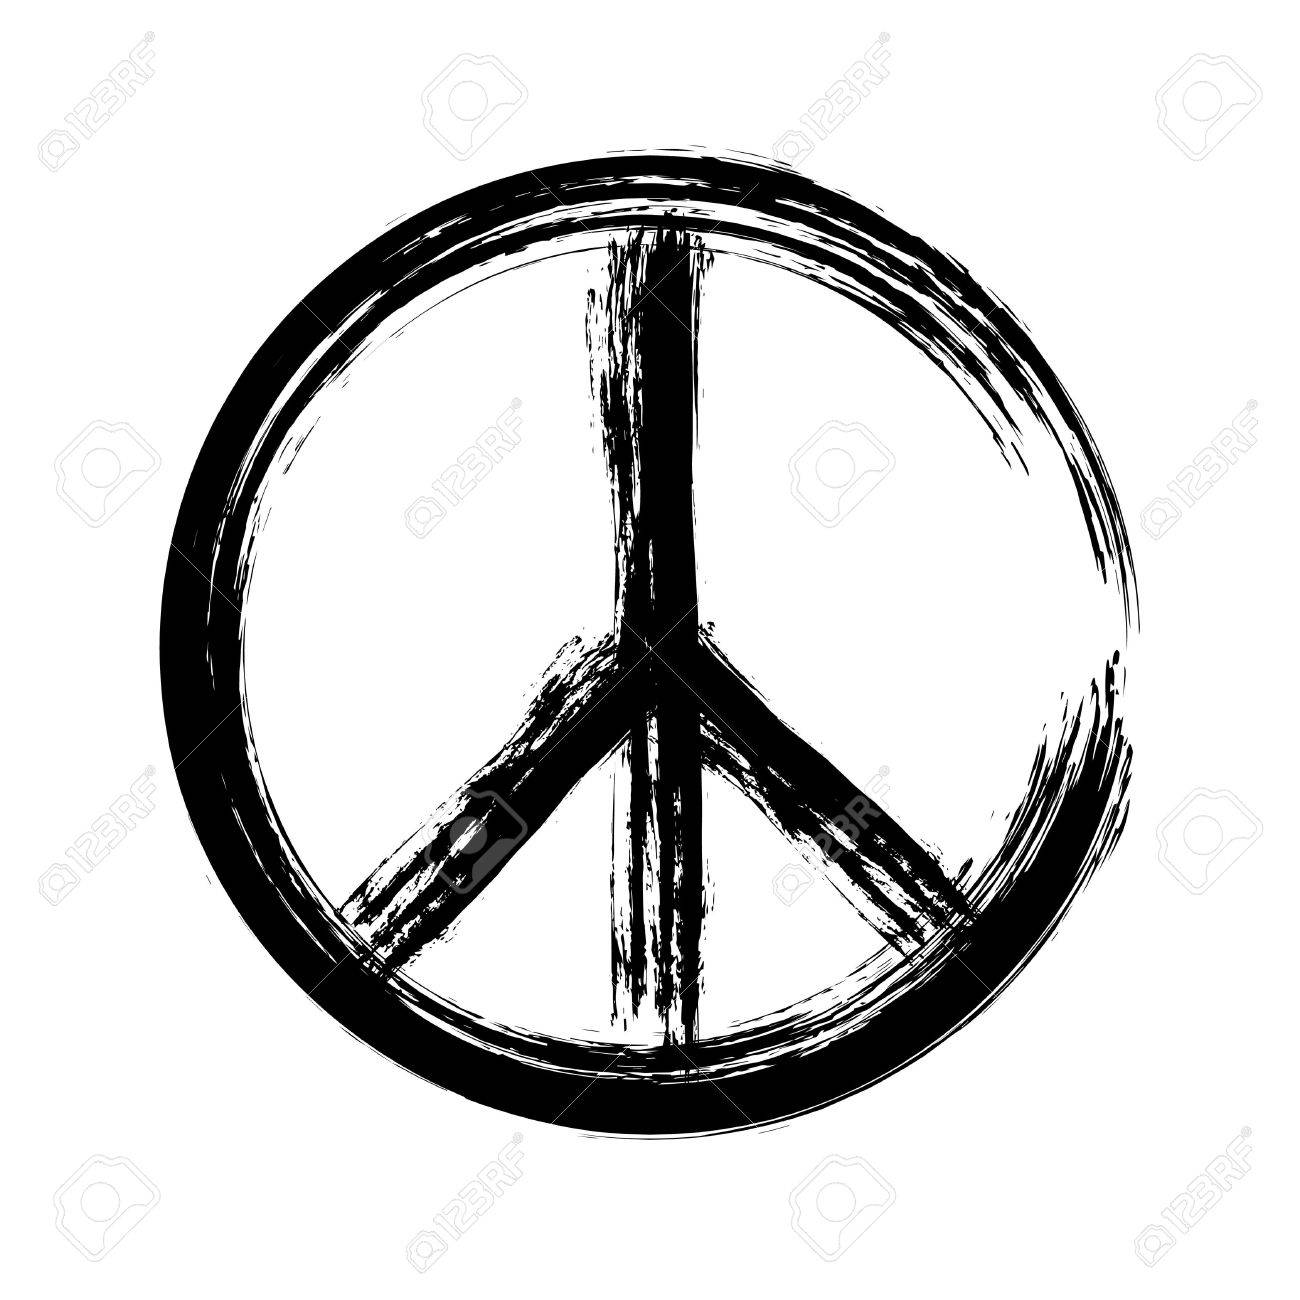 peace symbol icon vector. War and peace friendship pacifism. peace illustration - 56975677